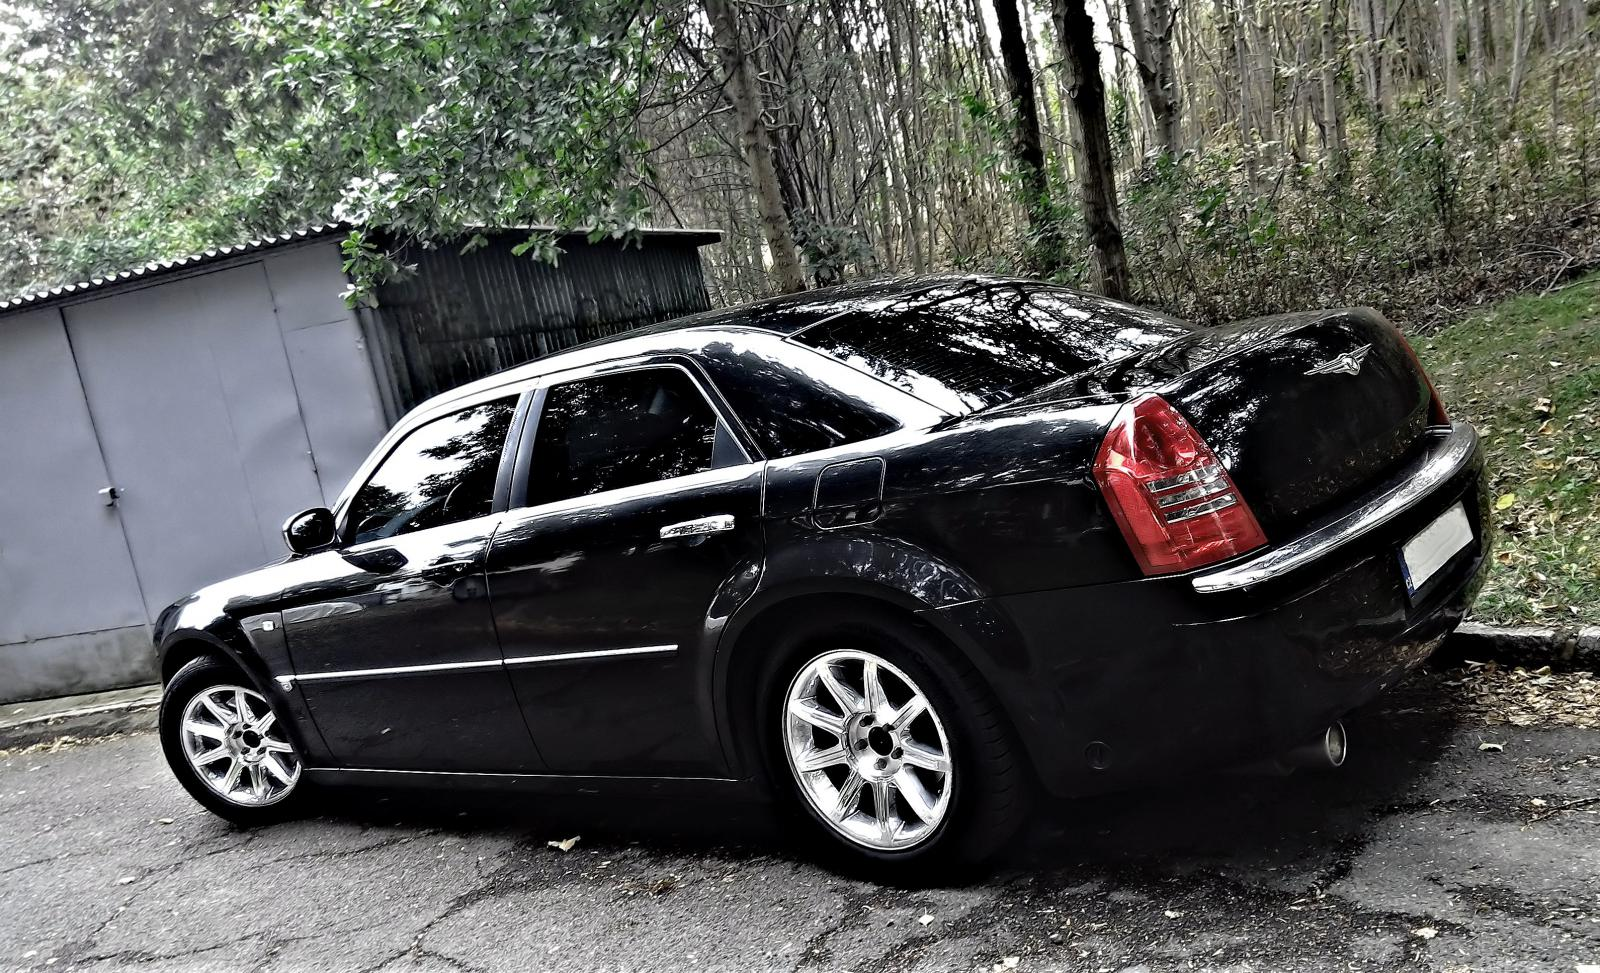 2004 chrysler 300 300c i srt 8 1 generace 5 7 v8. Black Bedroom Furniture Sets. Home Design Ideas